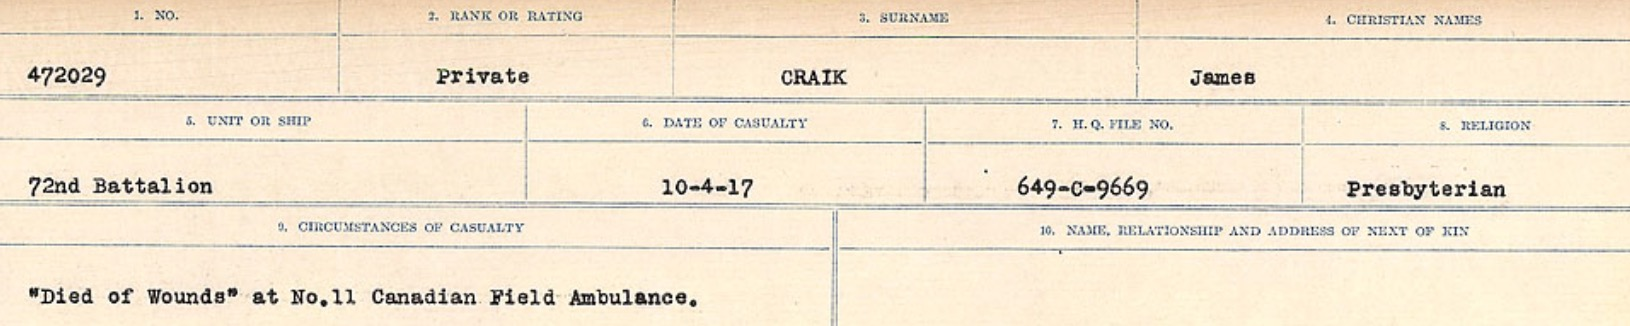 Circumstances of death registers– Source: Library and Archives Canada. CIRCUMSTANCES OF DEATH REGISTERS, FIRST WORLD WAR Surnames: CRABB TO CROSSLAND Microform Sequence 24; Volume Number 31829_B016733. Reference RG150, 1992-93/314, 168. Page 163 of 788.